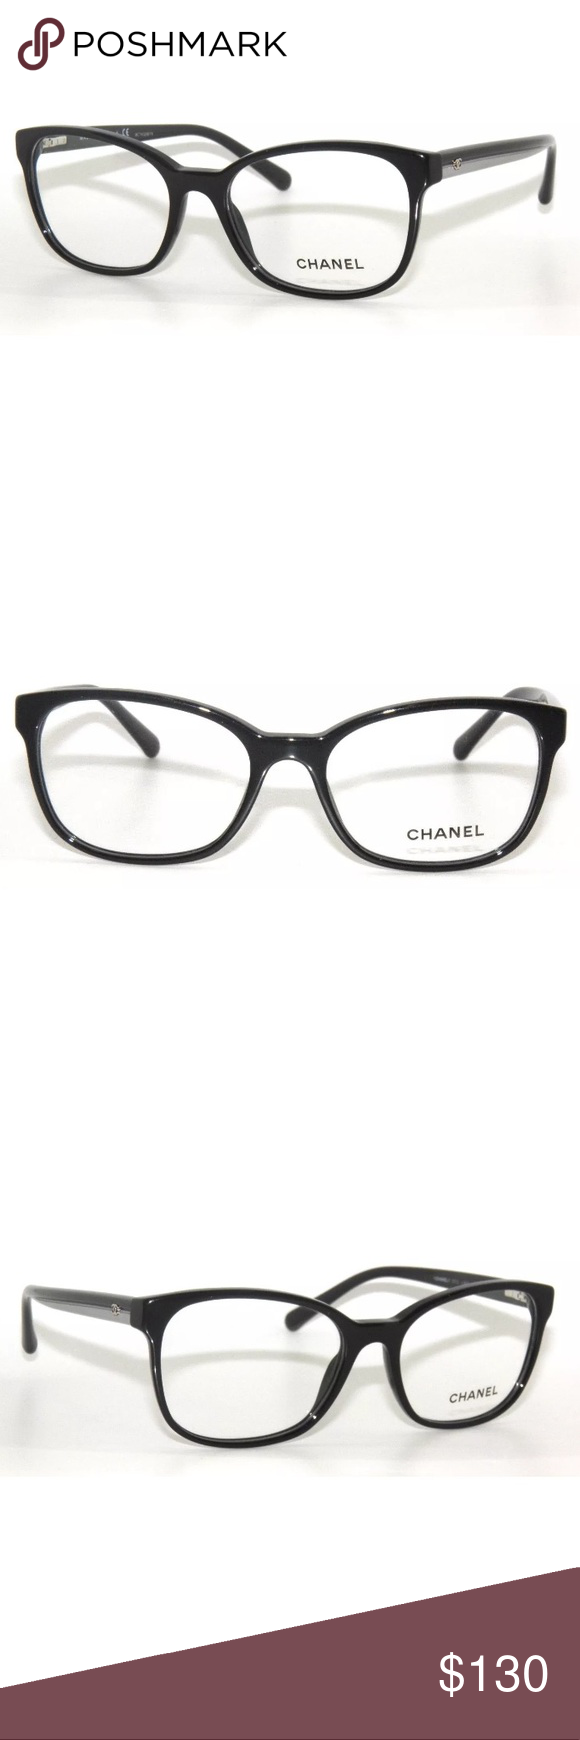 5956f2eda740 3313 BLACK EYEGLASSES 54mm NEW, COMES WITH CHANEL CASE CHANEL Accessories  Glasses